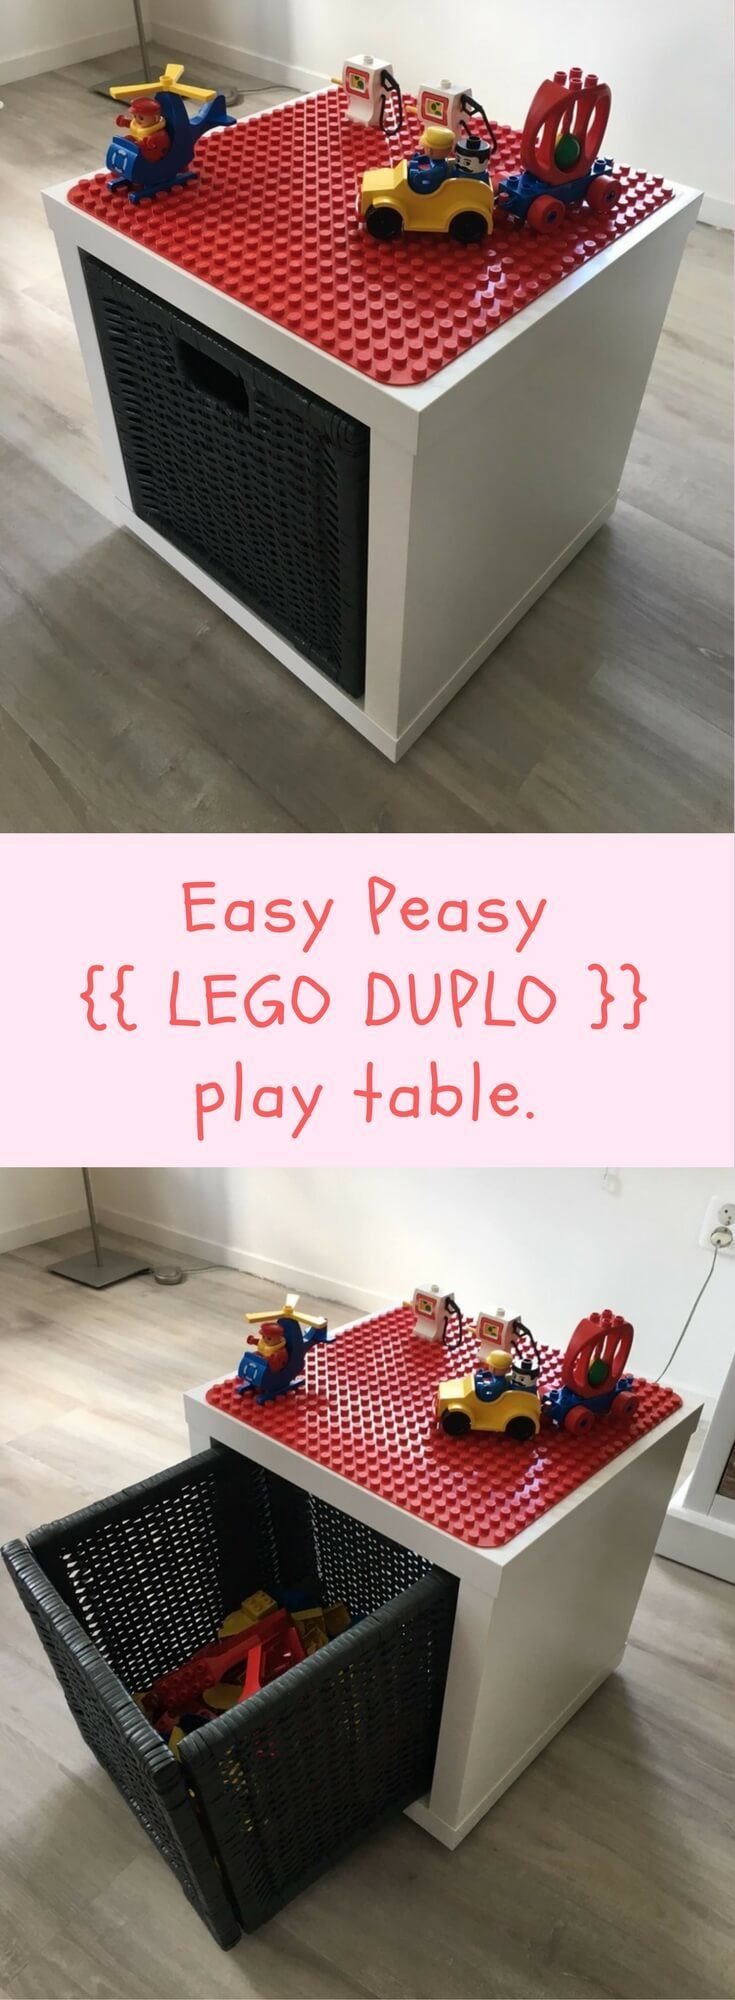 LEGO Duplo play and store box http://www.ikeahackers.net/2017/09/lego-duplo-play-store-box.html